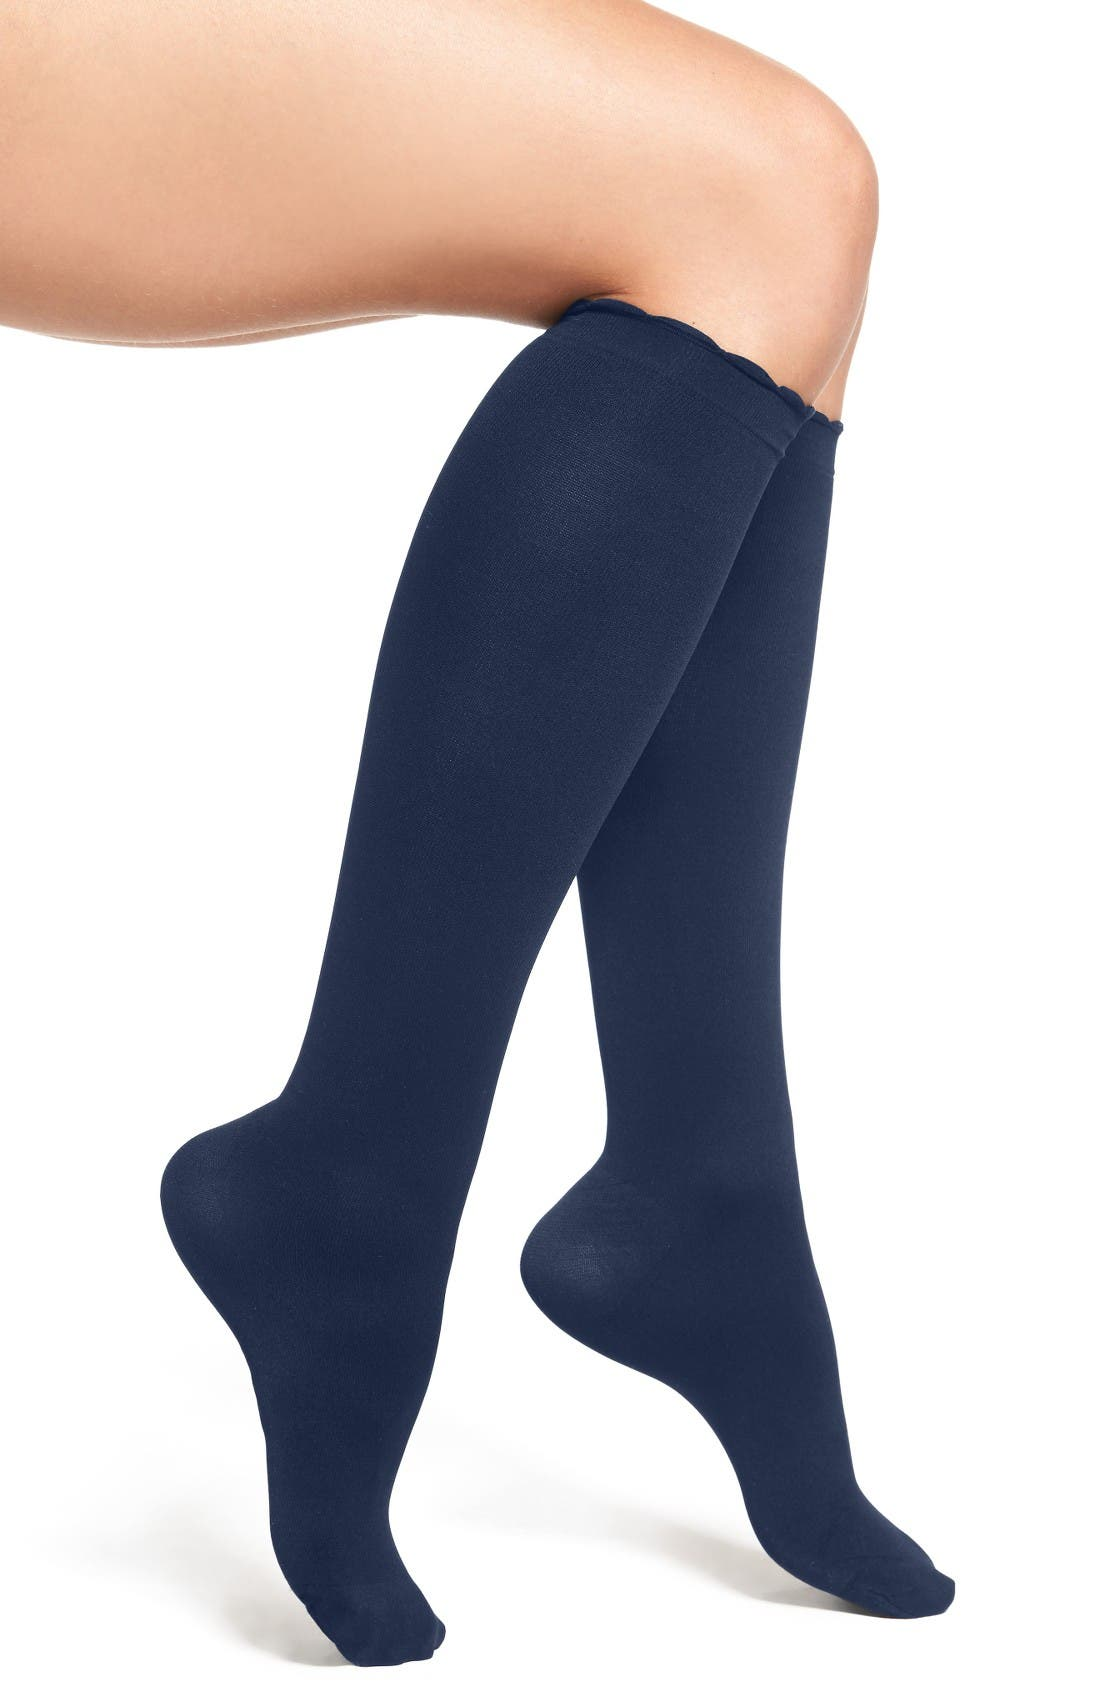 NORDSTROM Compression Trouser Socks